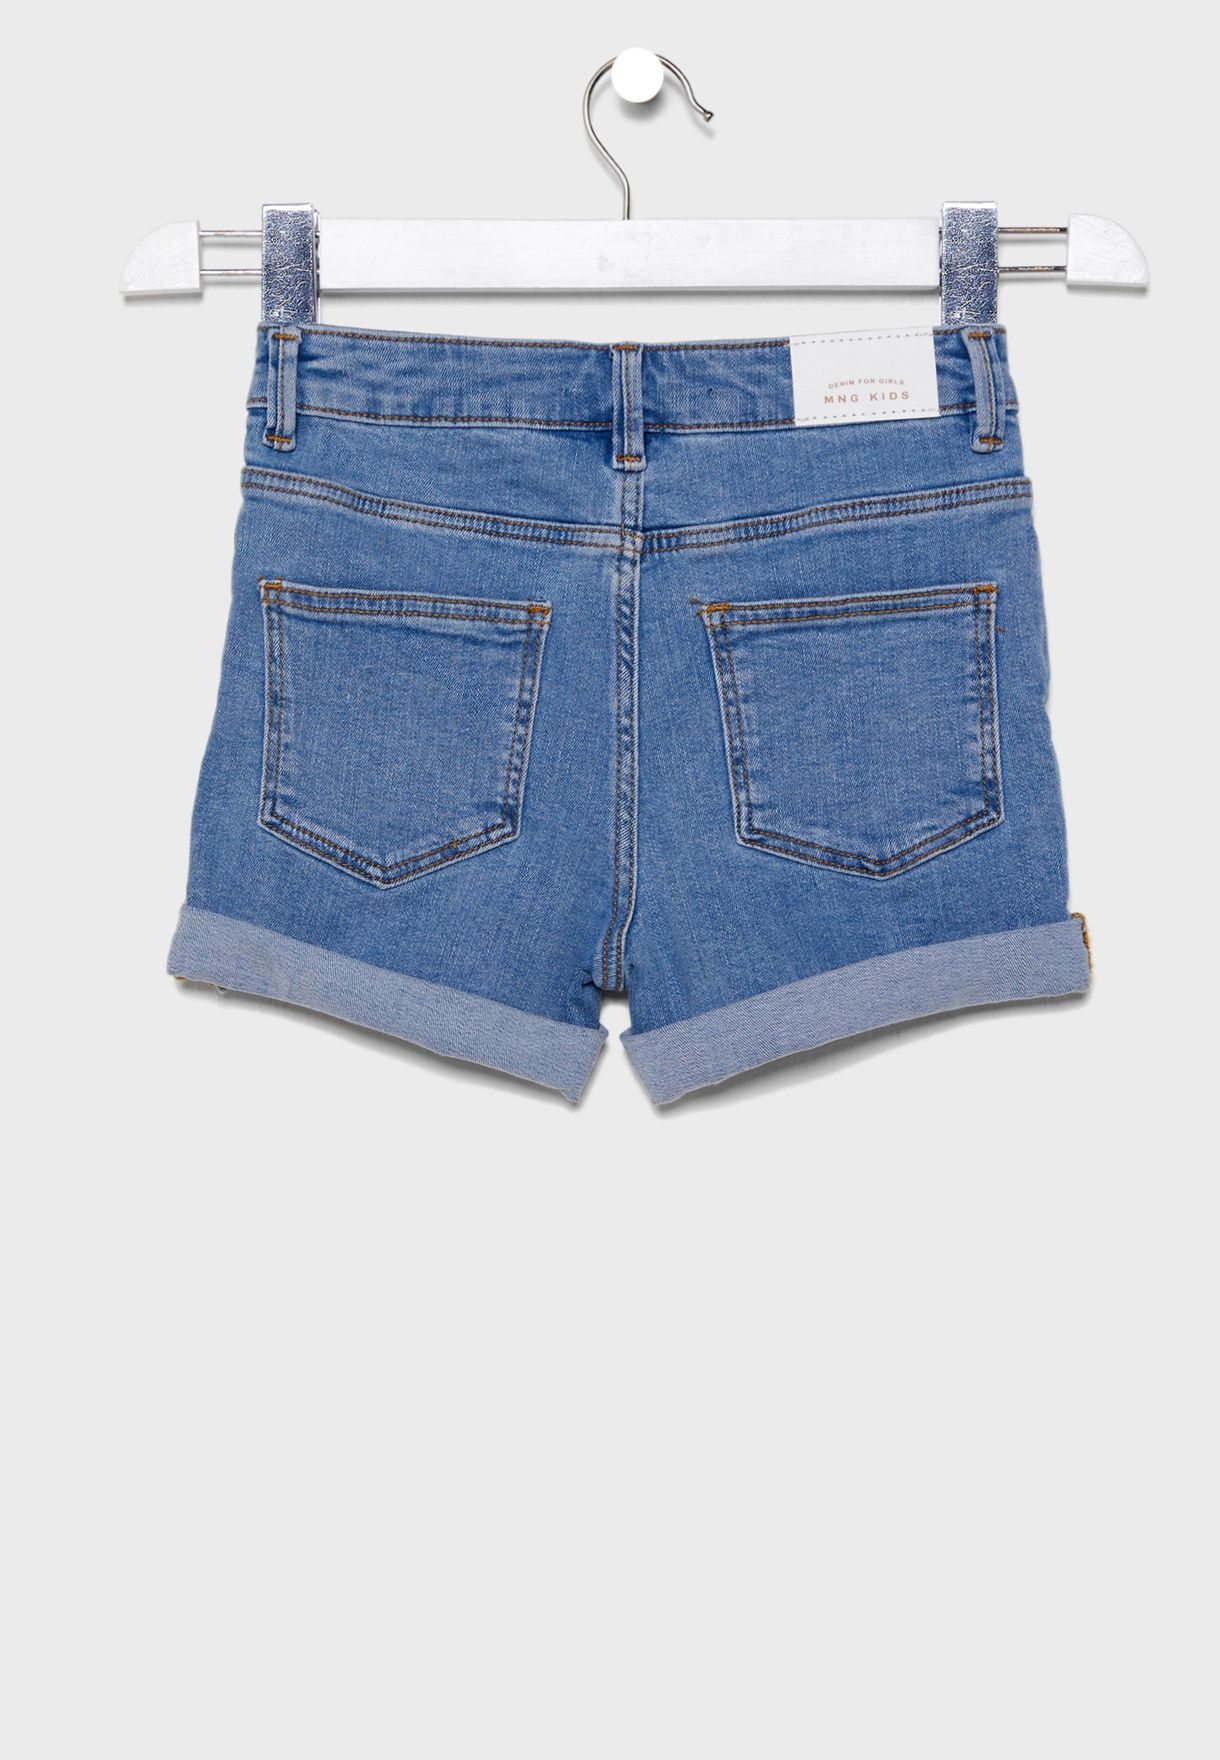 Kids Roll Up Shorts